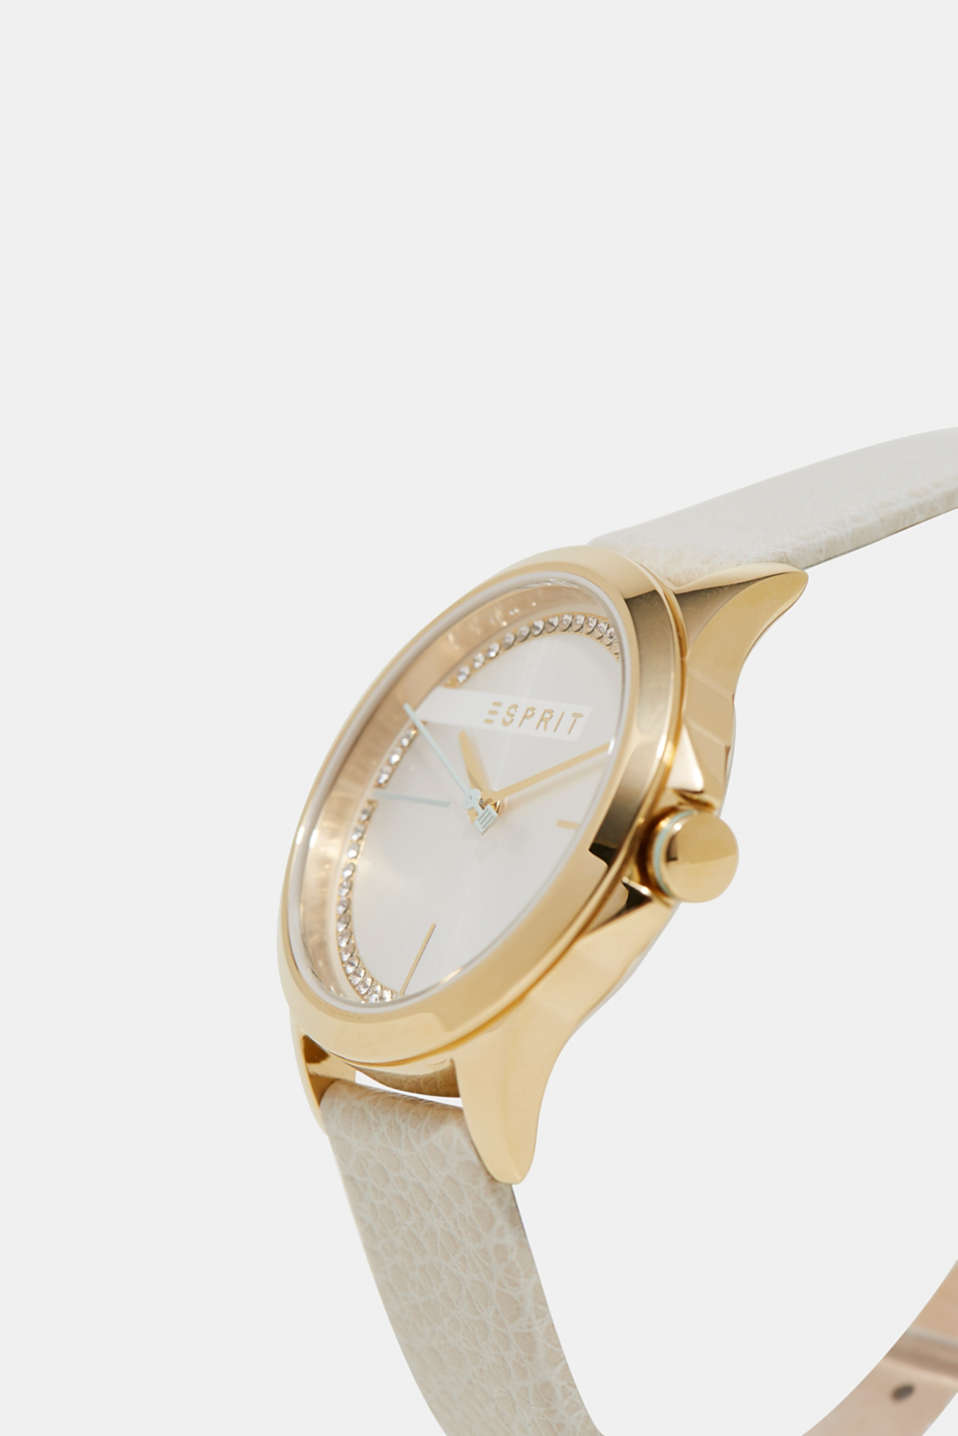 Gold tone watch with leather strap